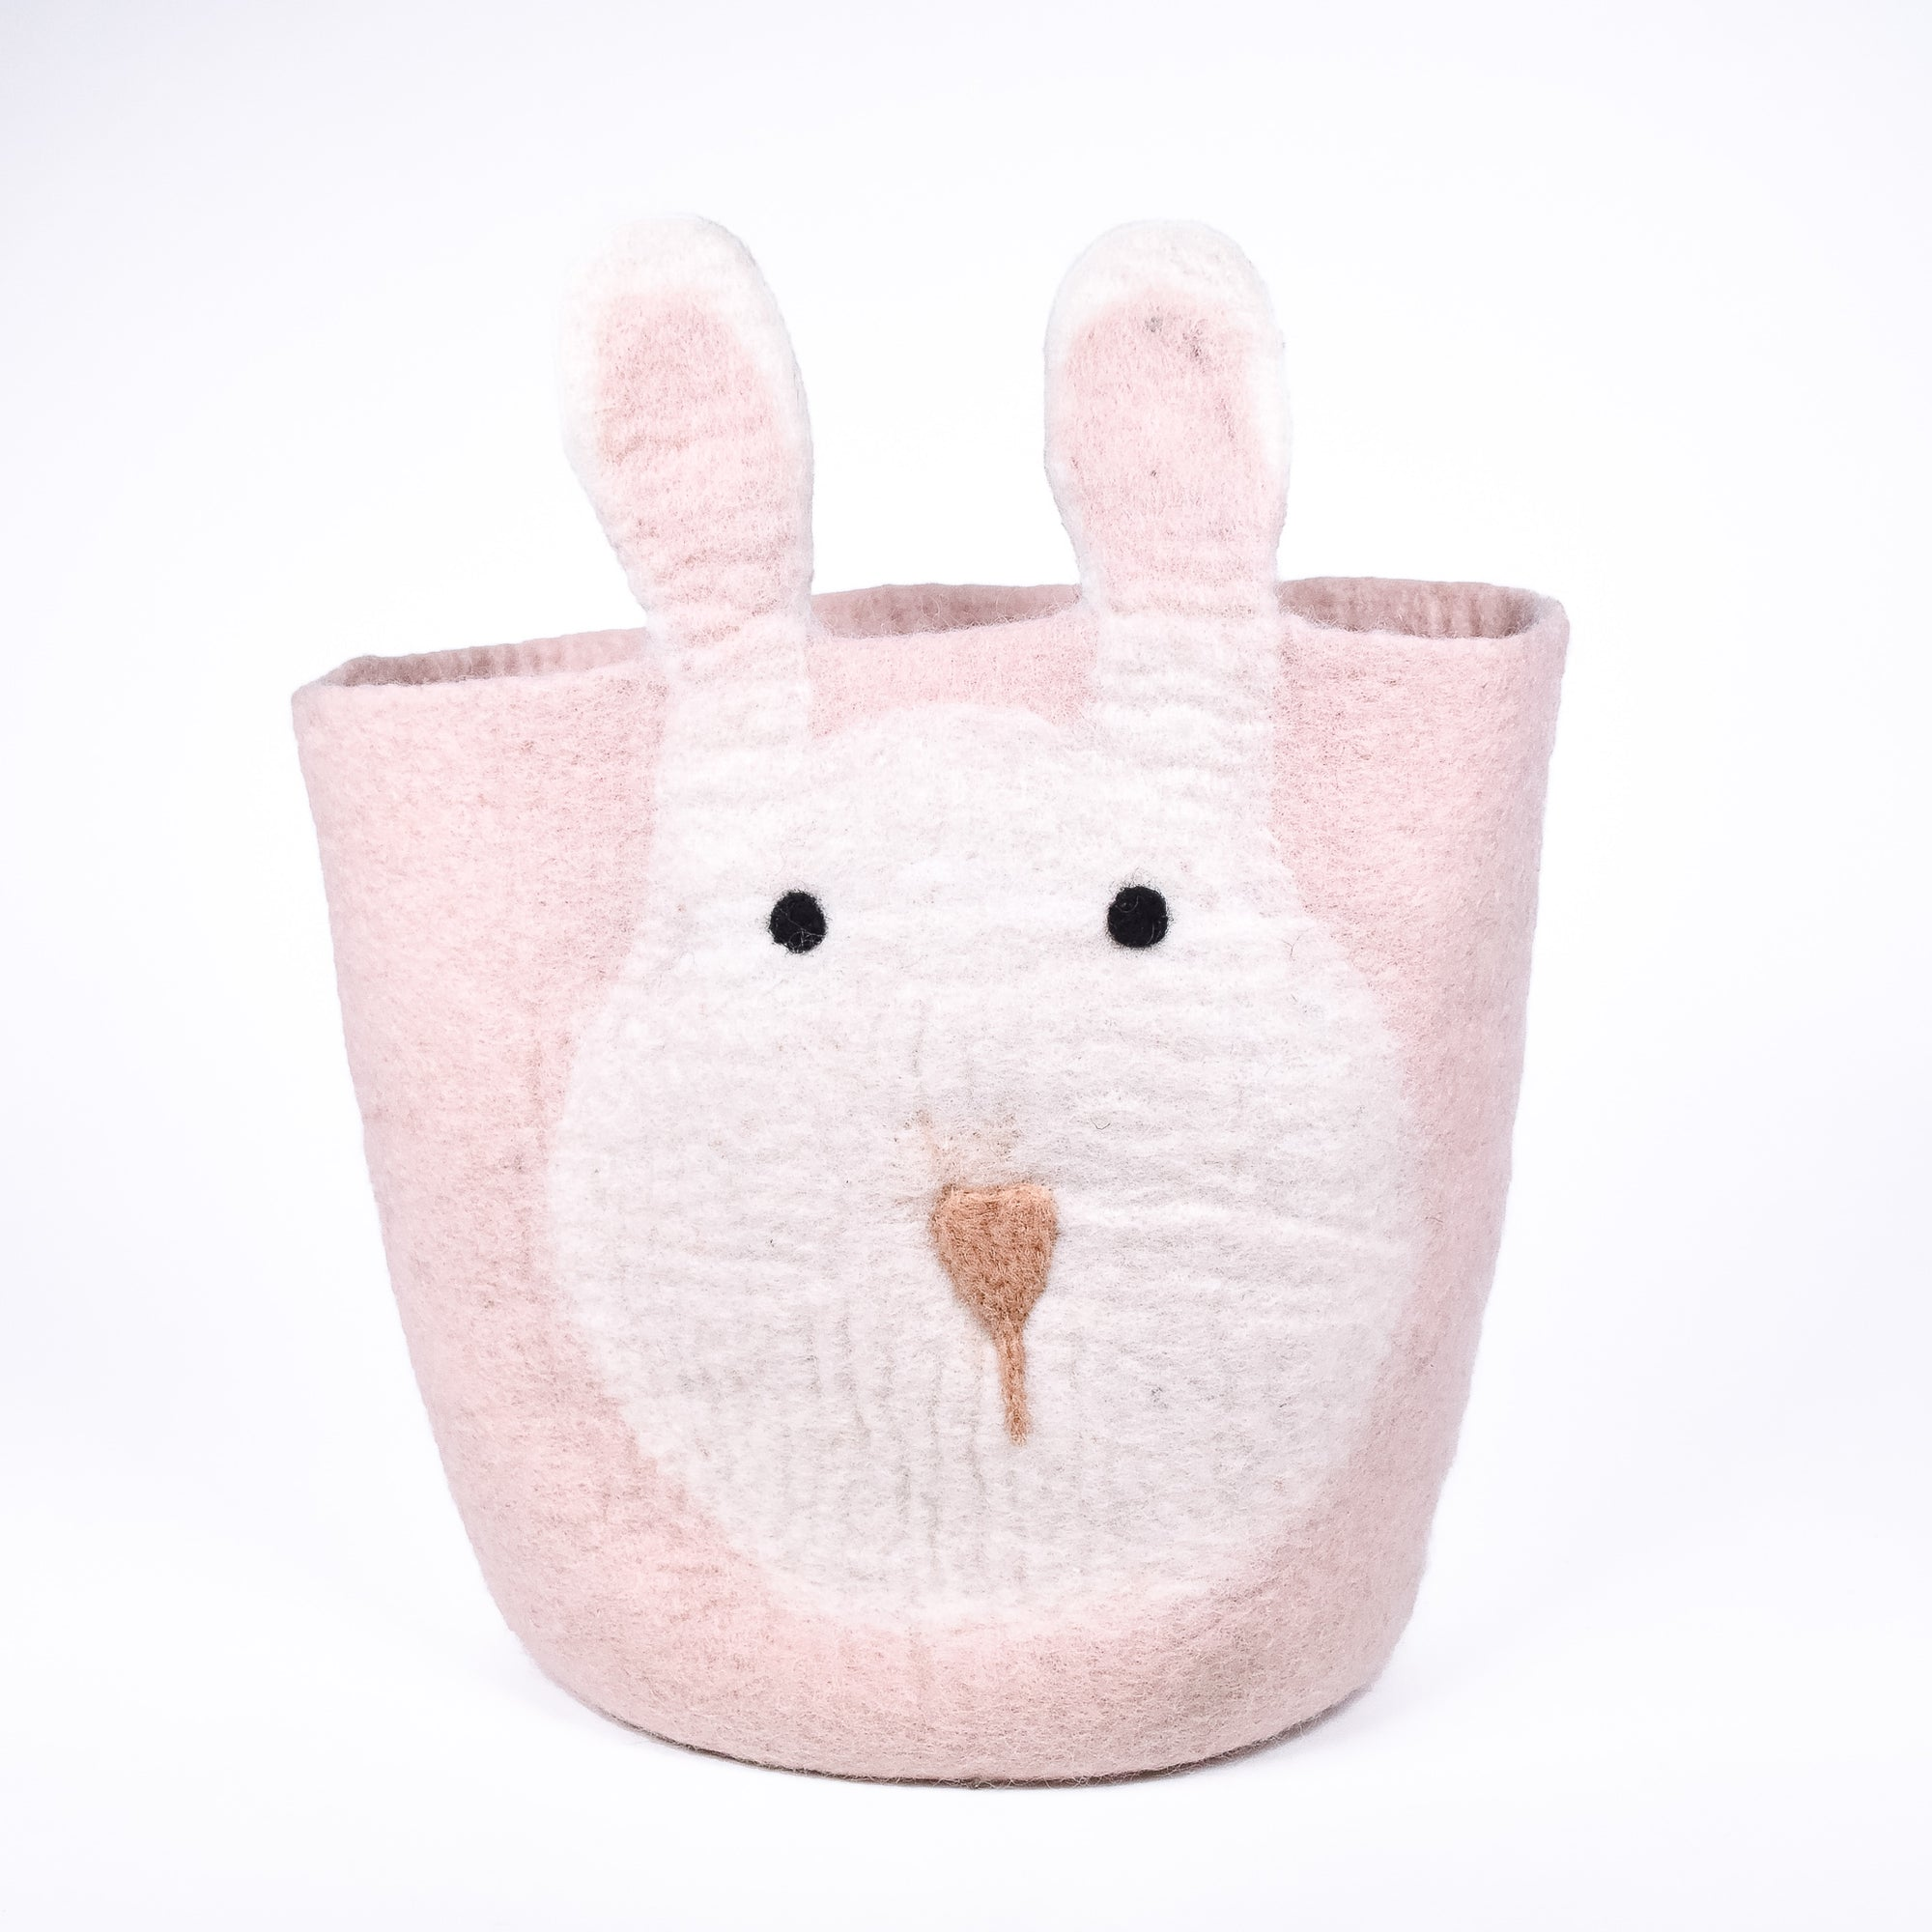 Felt Animal Baskets - Rug & Weave